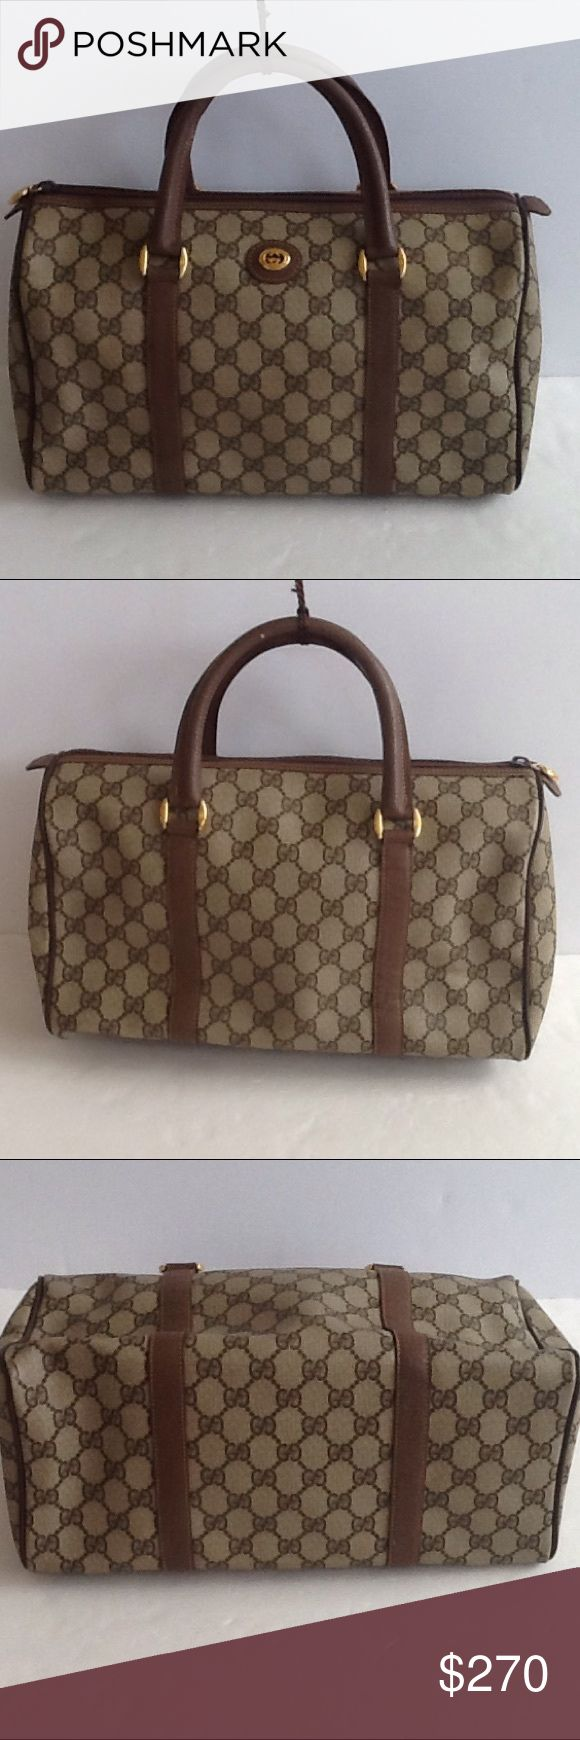 Authentic Gucci Monogram Doctor Brown Satchel Bag Linen showed signs of used. The canvas and leather strap showed light wearing. The bag was made in Italy with a serial number 002-123-0842. The dimension is 8, 12 and 6. Gucci Bags Satchels